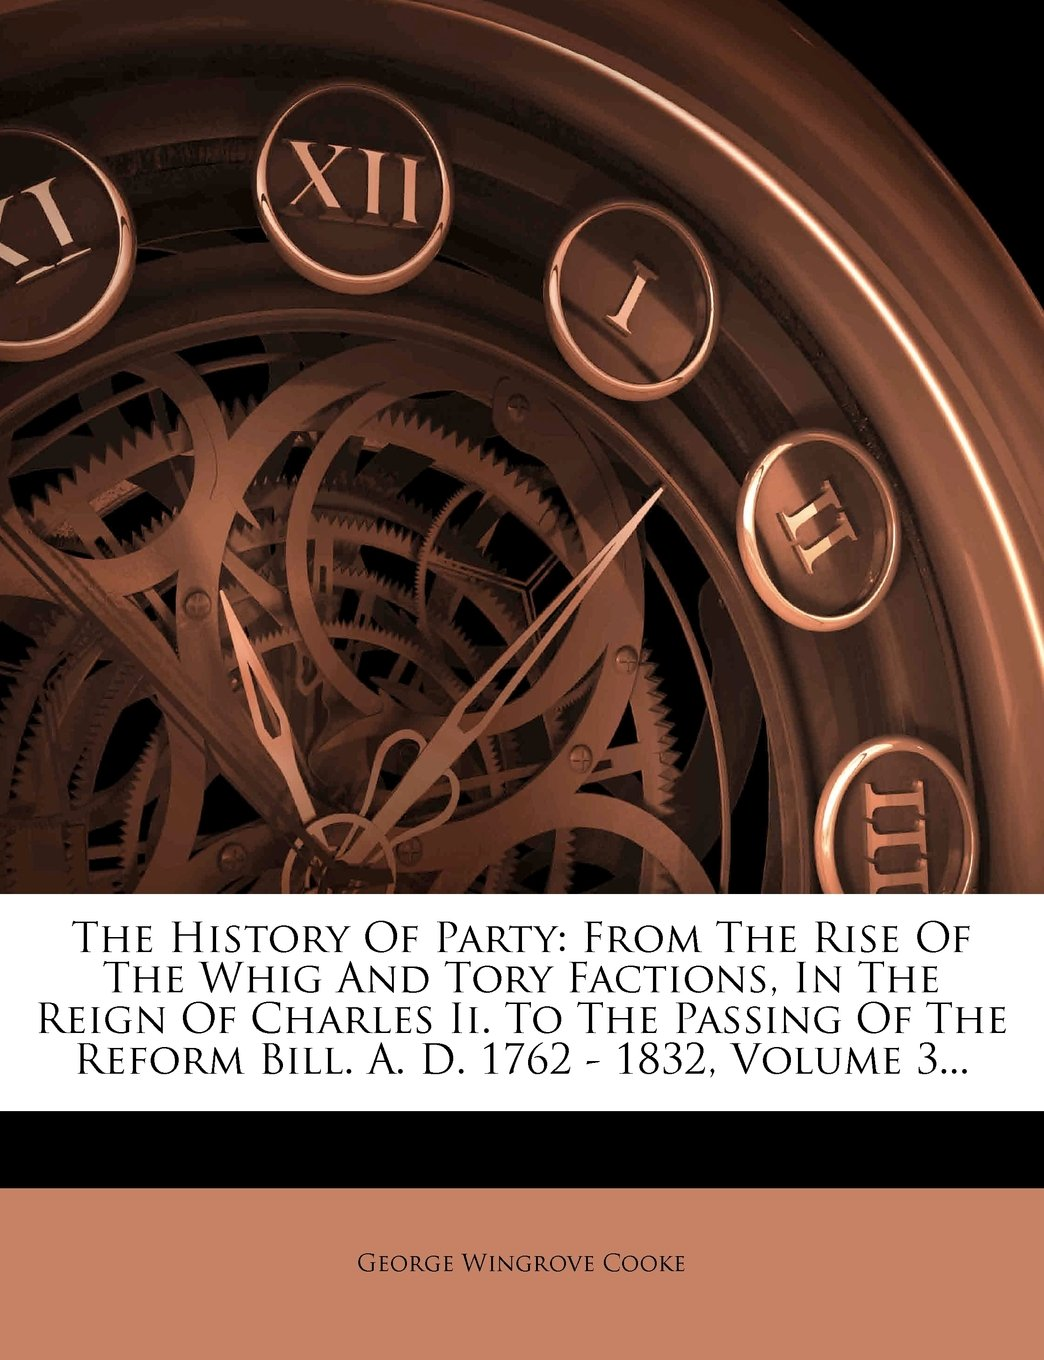 Download The History Of Party: From The Rise Of The Whig And Tory Factions, In The Reign Of Charles Ii. To The Passing Of The Reform Bill. A. D. 1762 - 1832, Volume 3... pdf